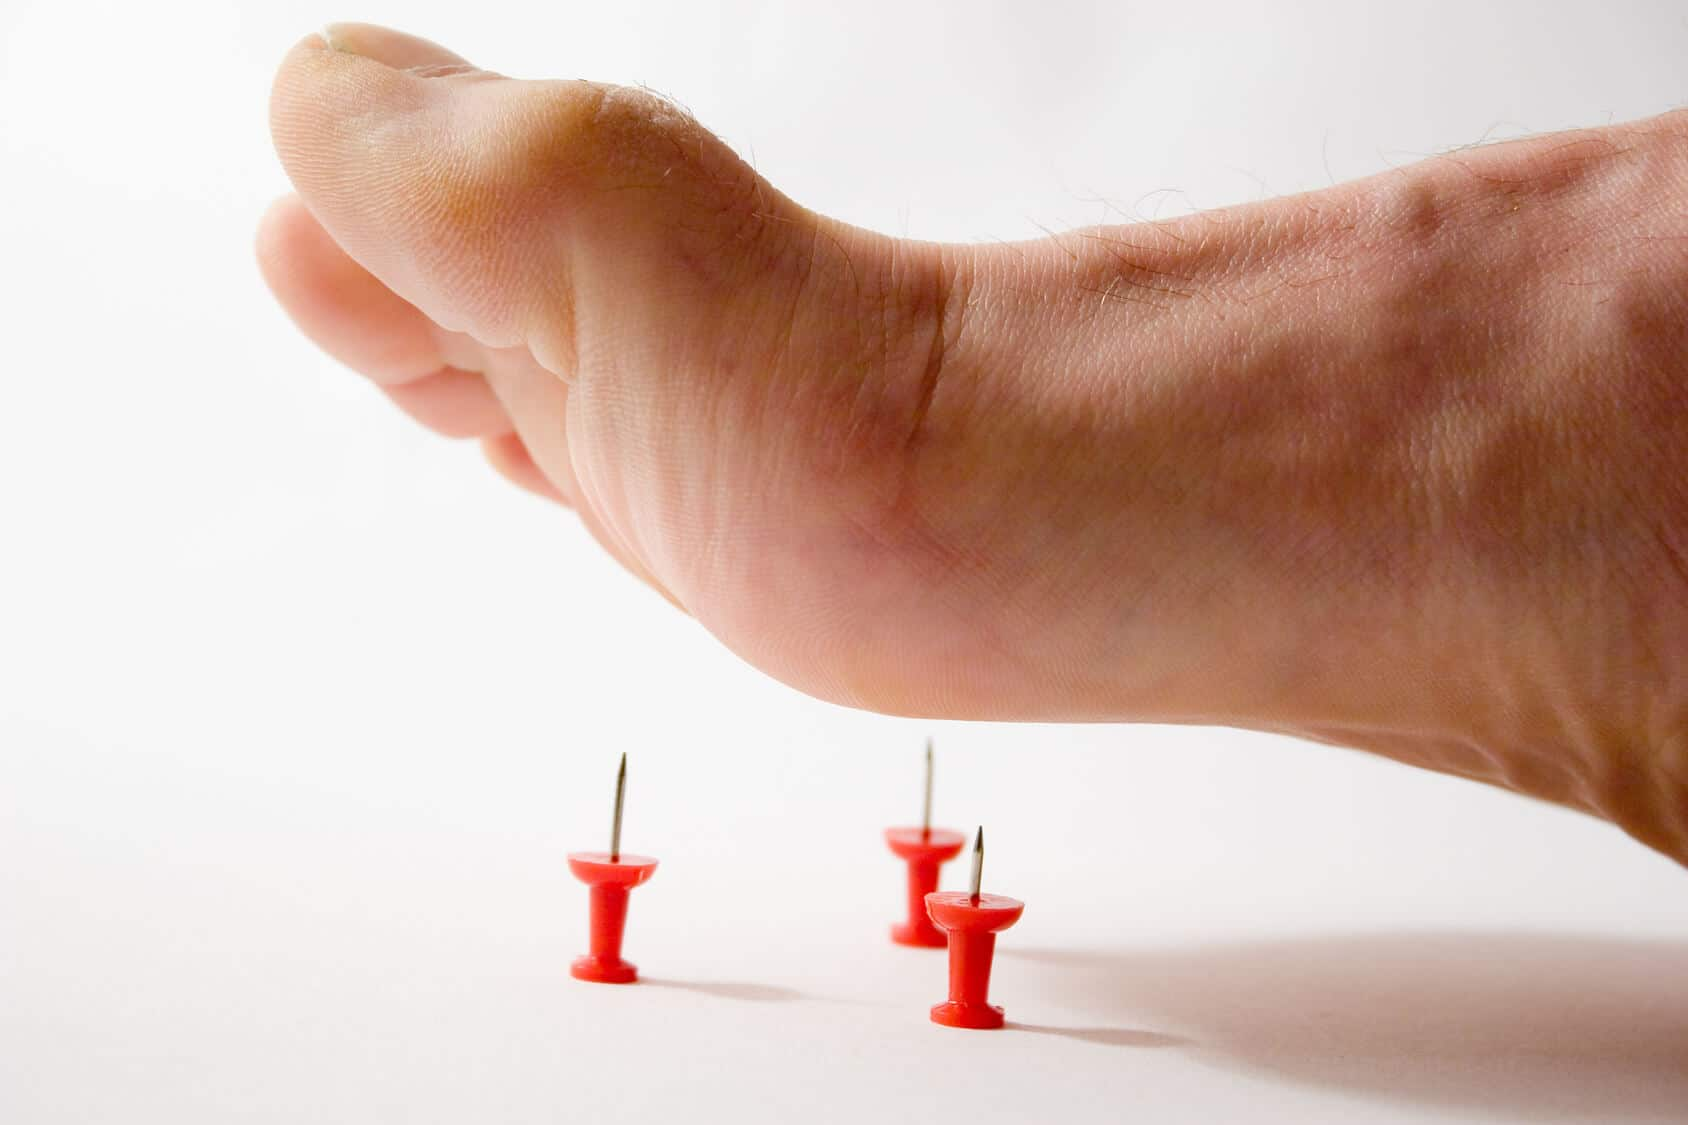 How To Treat Neuropathy In Feet Naturally